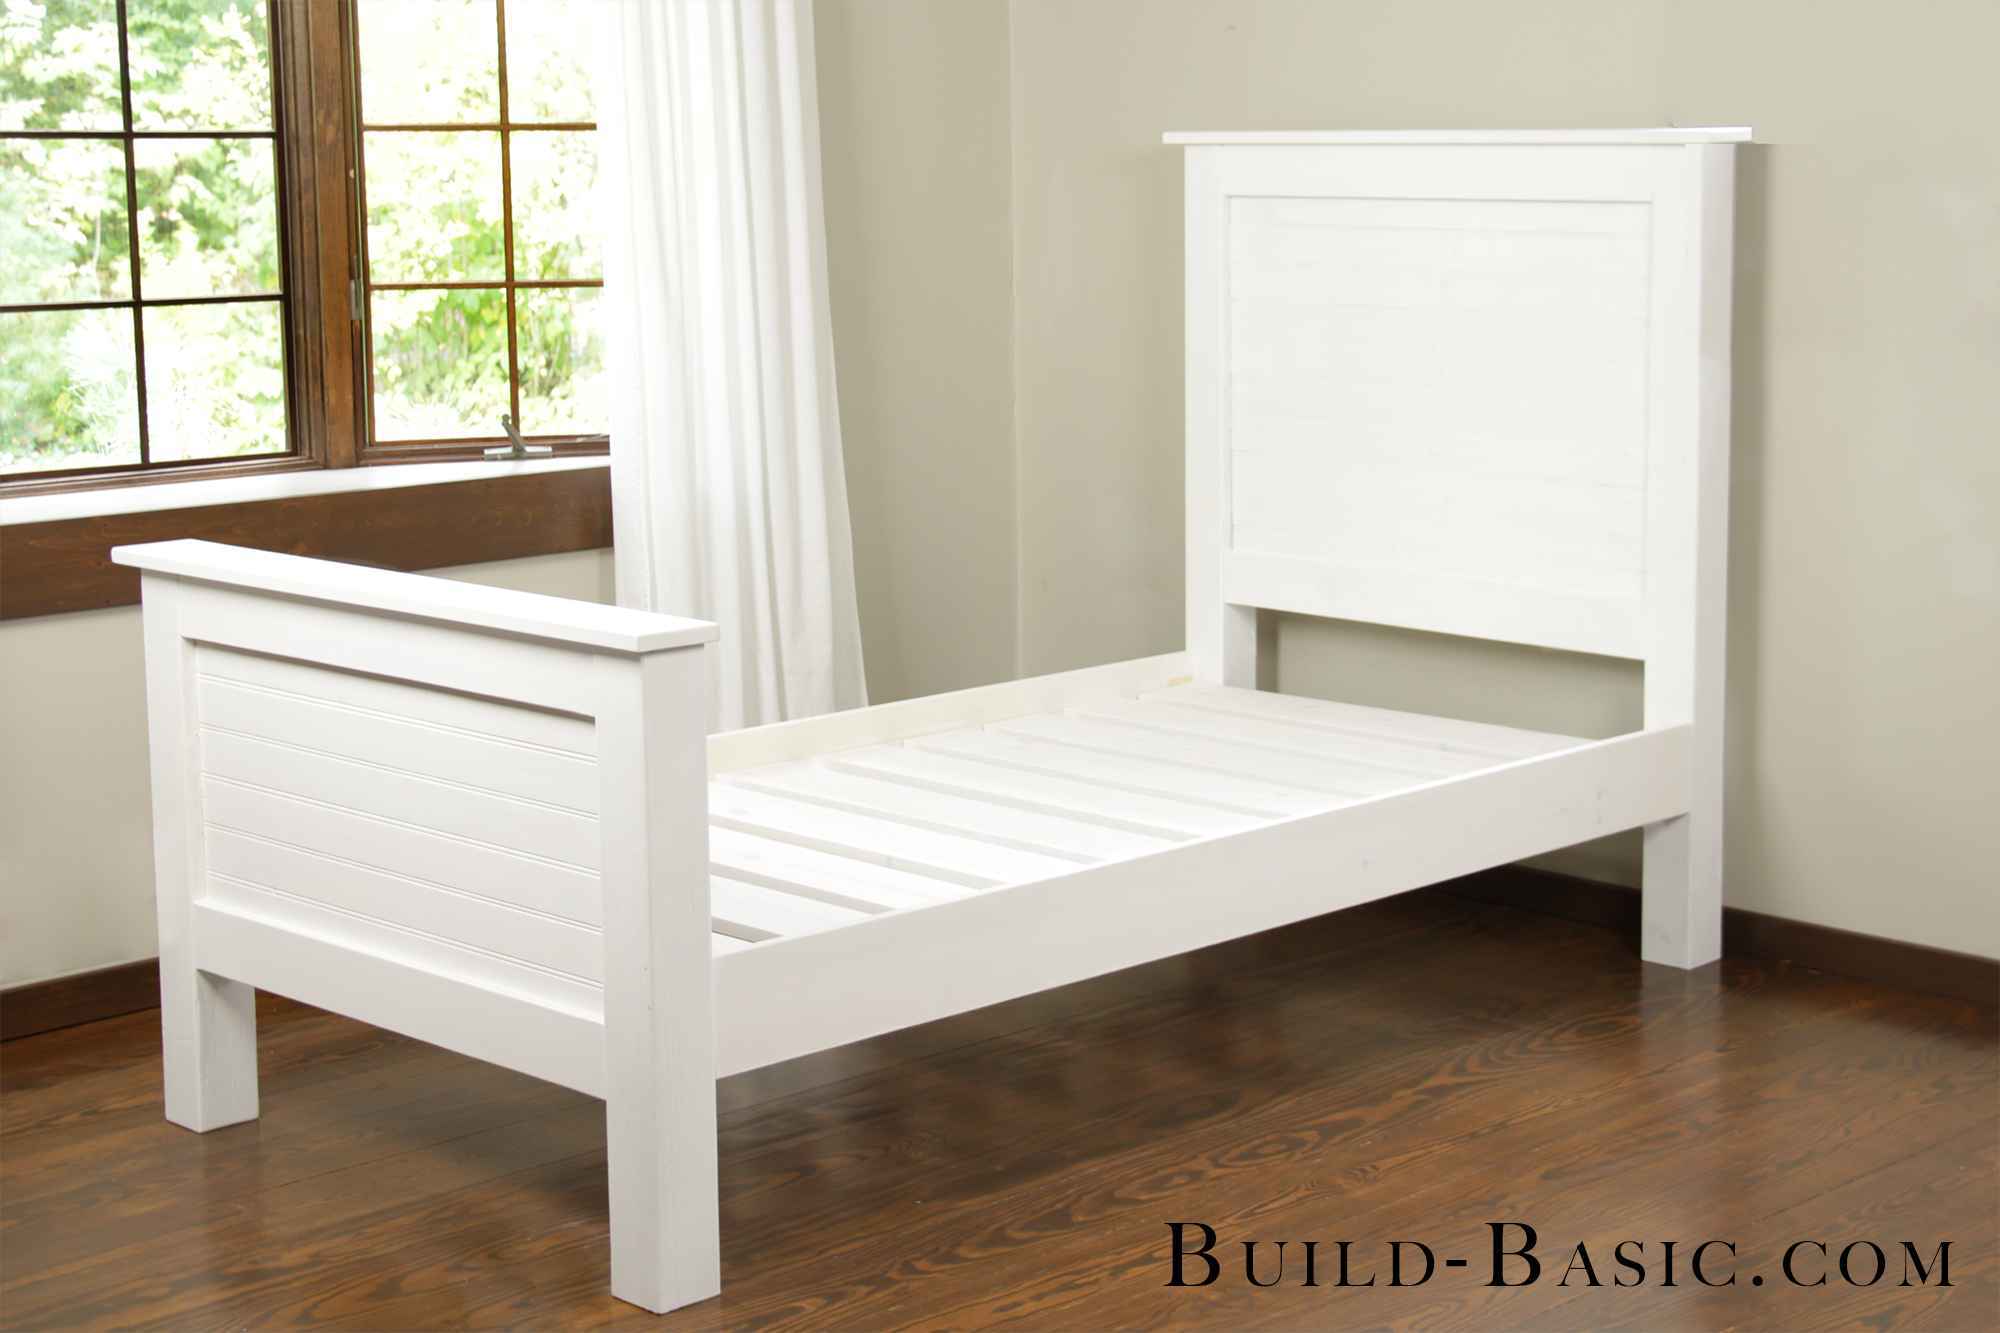 create beds bed contemporary murphy furniture mounted a wall